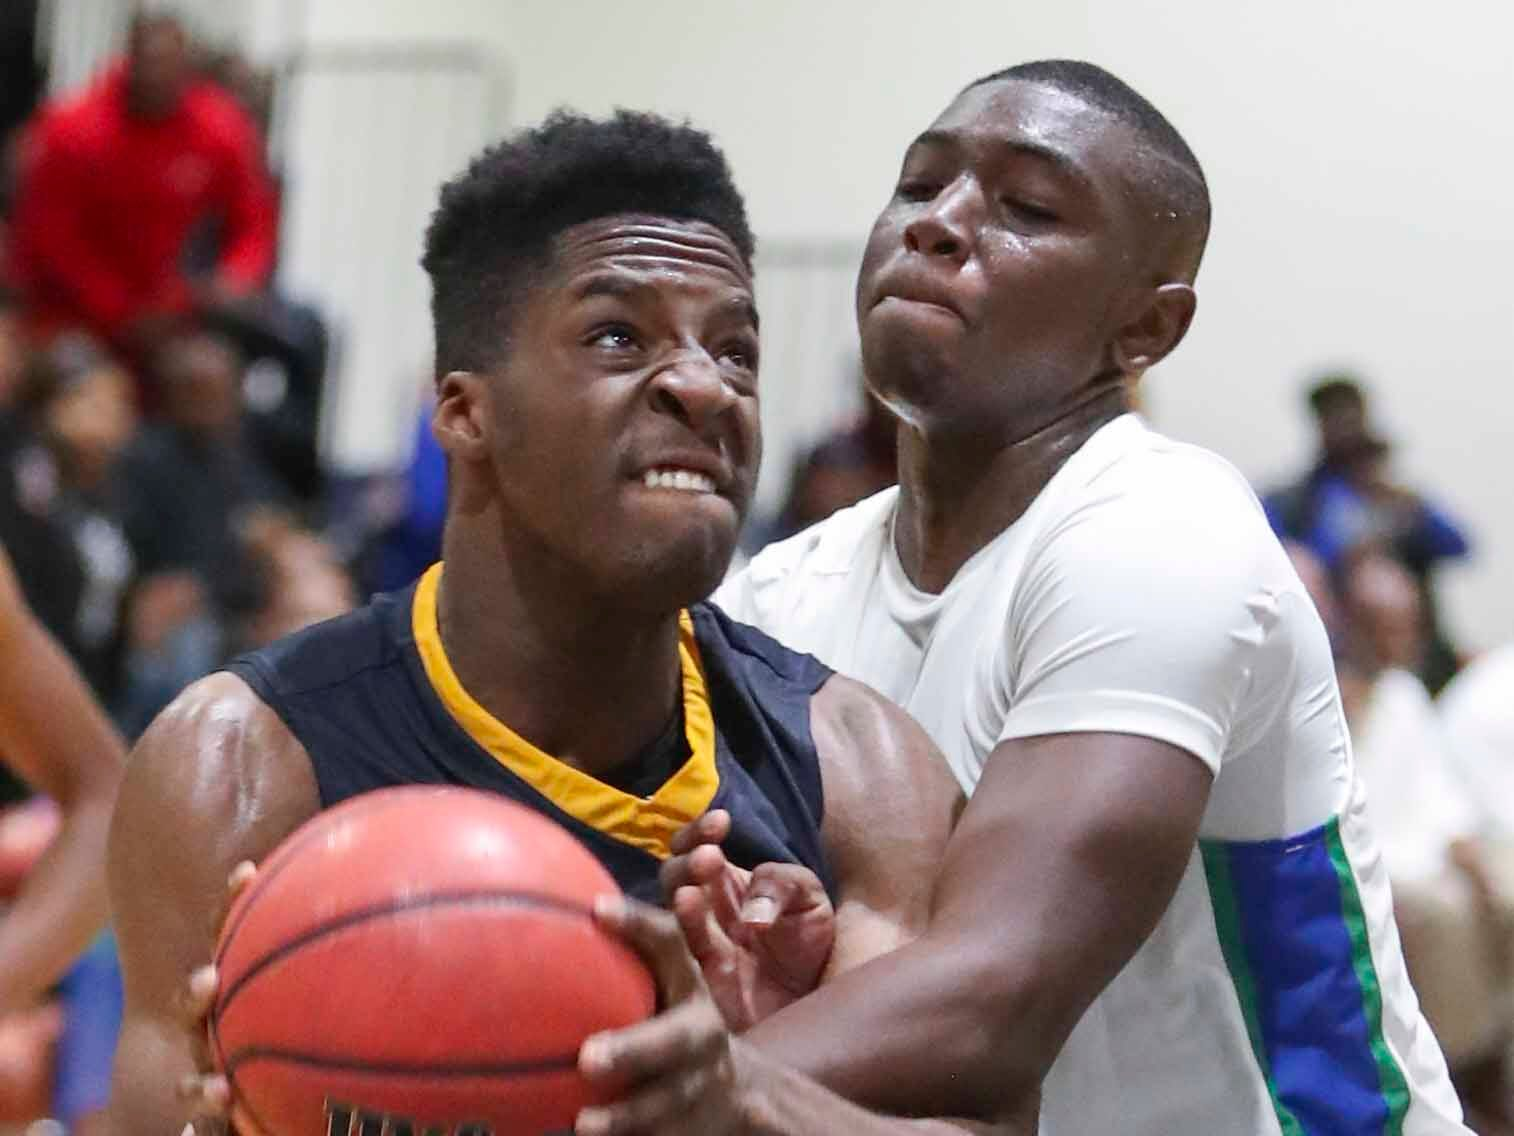 Sanford's Nnanna Njoku (left) tangles with St. Georges' Michael McCants late in Sanford's 61-56 overtime win at St. Georges Thursday.